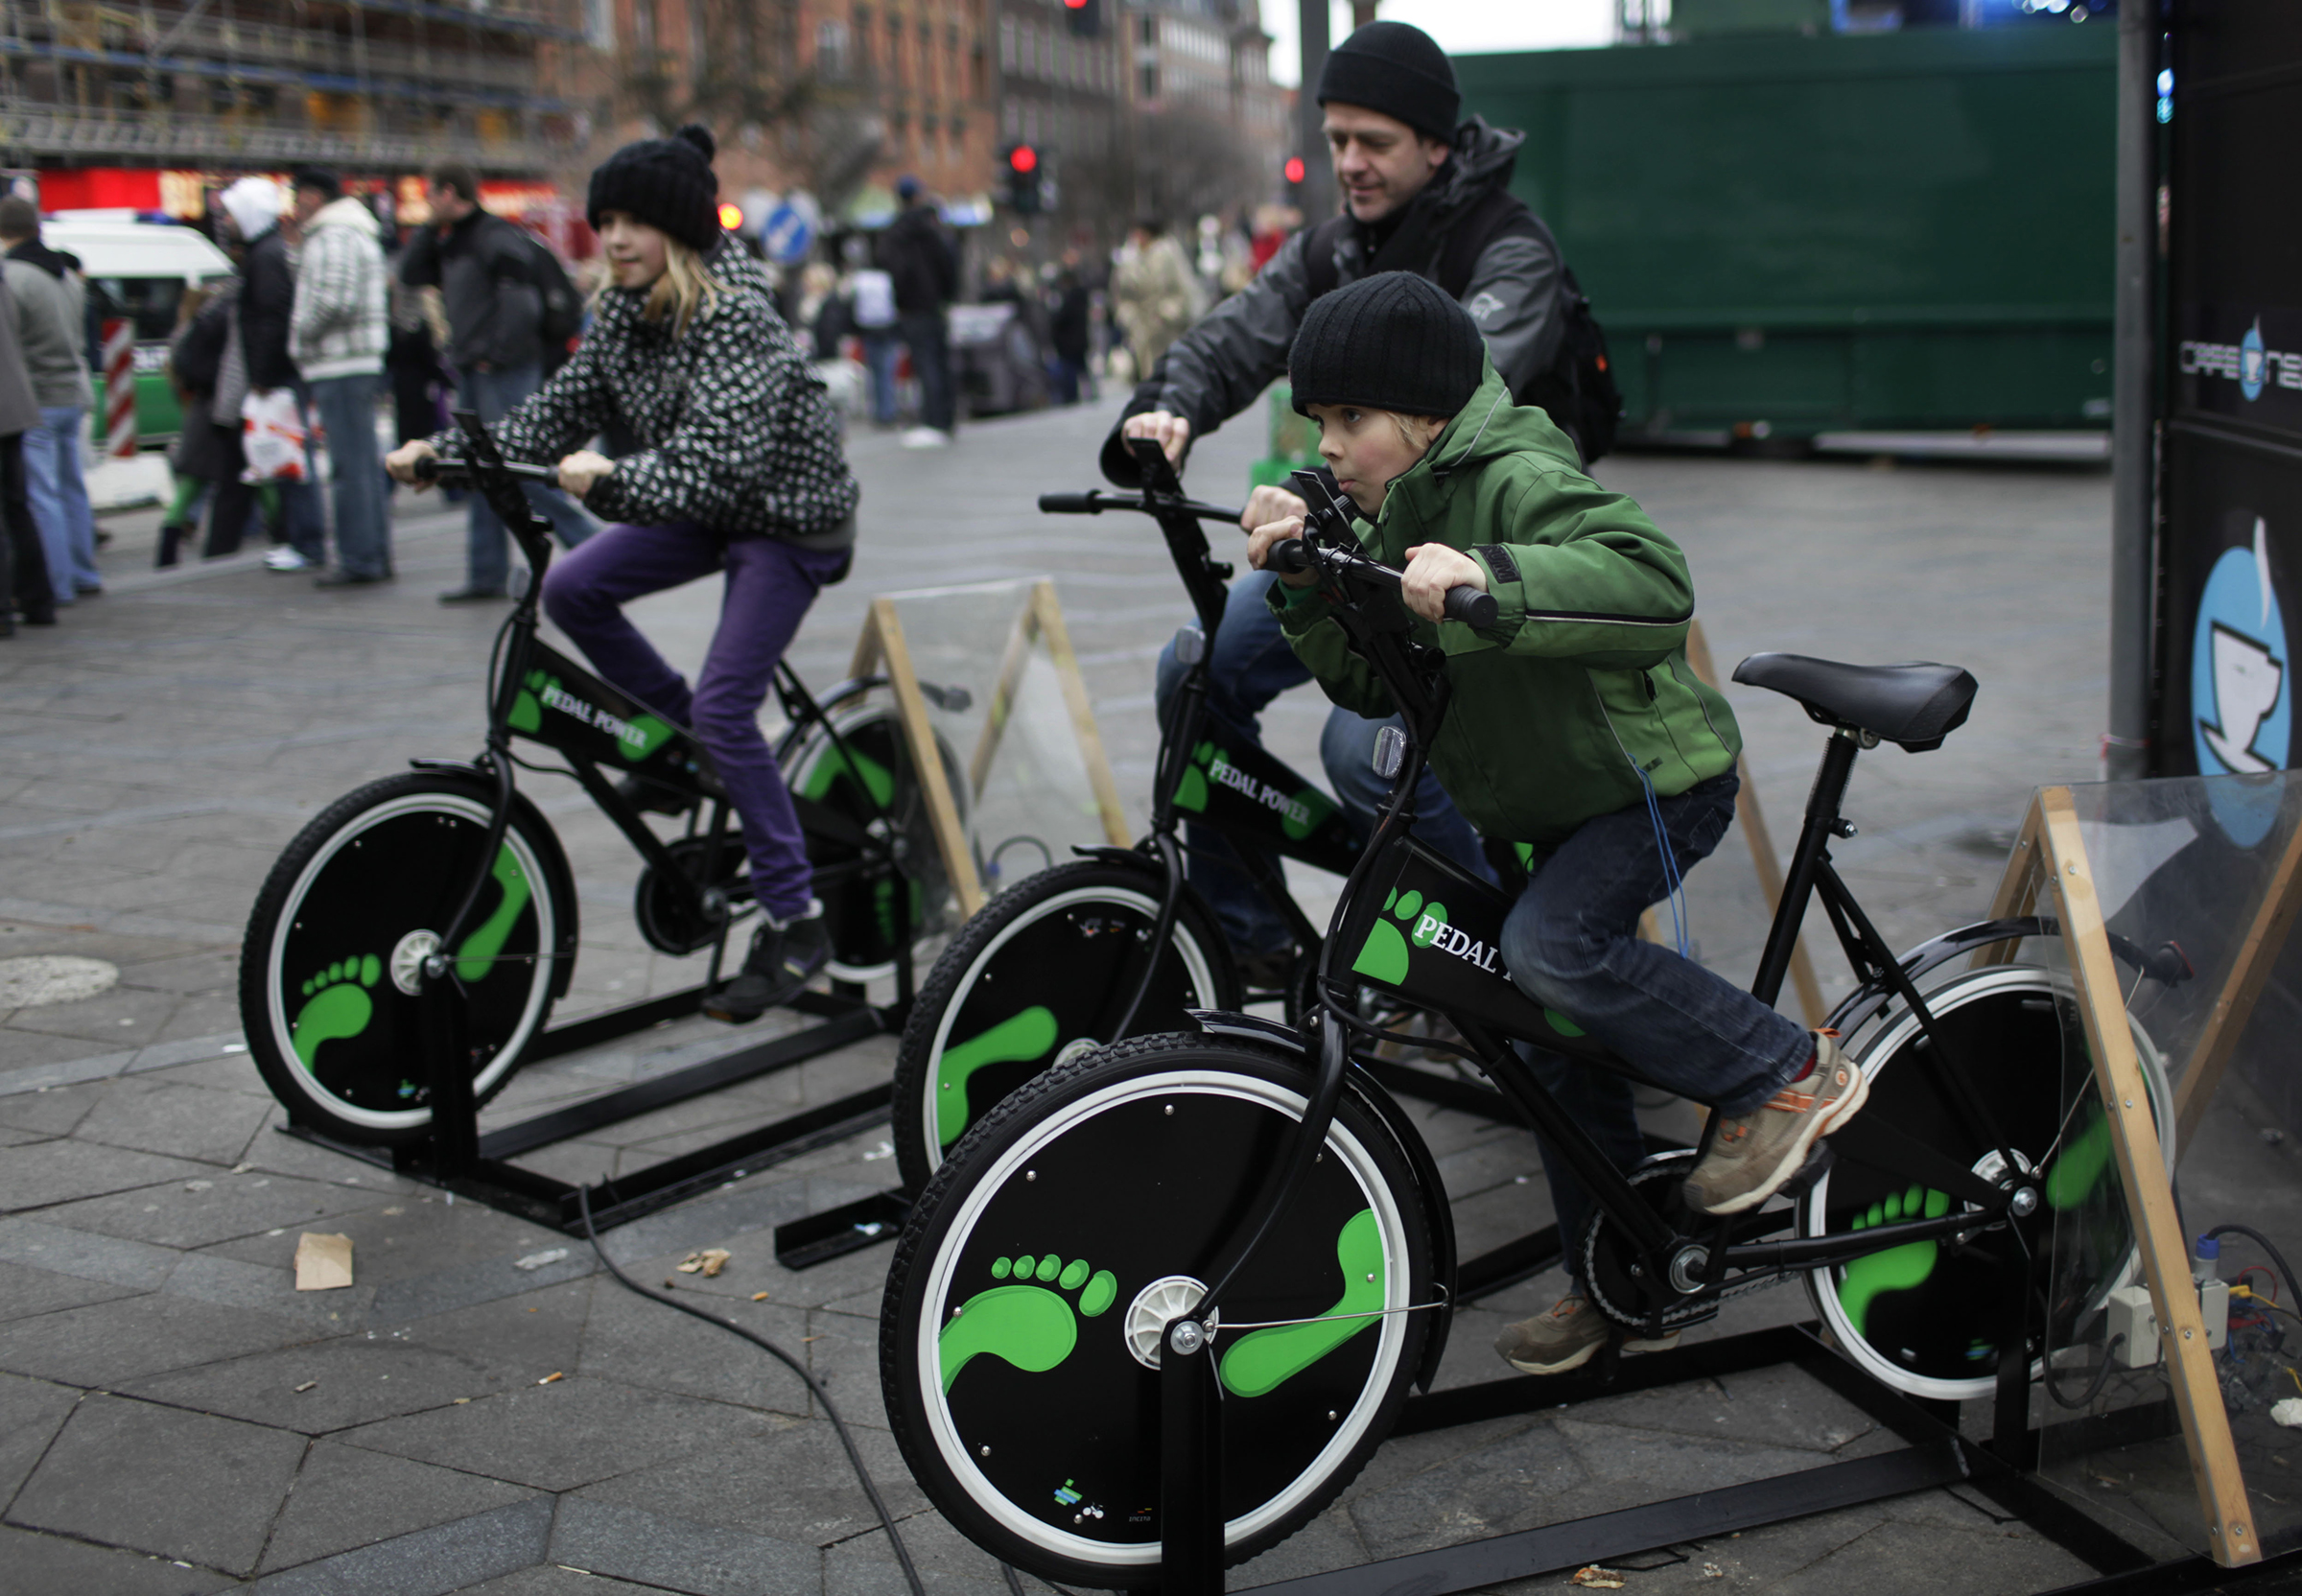 Danish people try out bicycles being set up to produce electricity in the center of Copenhagen, Denmark.